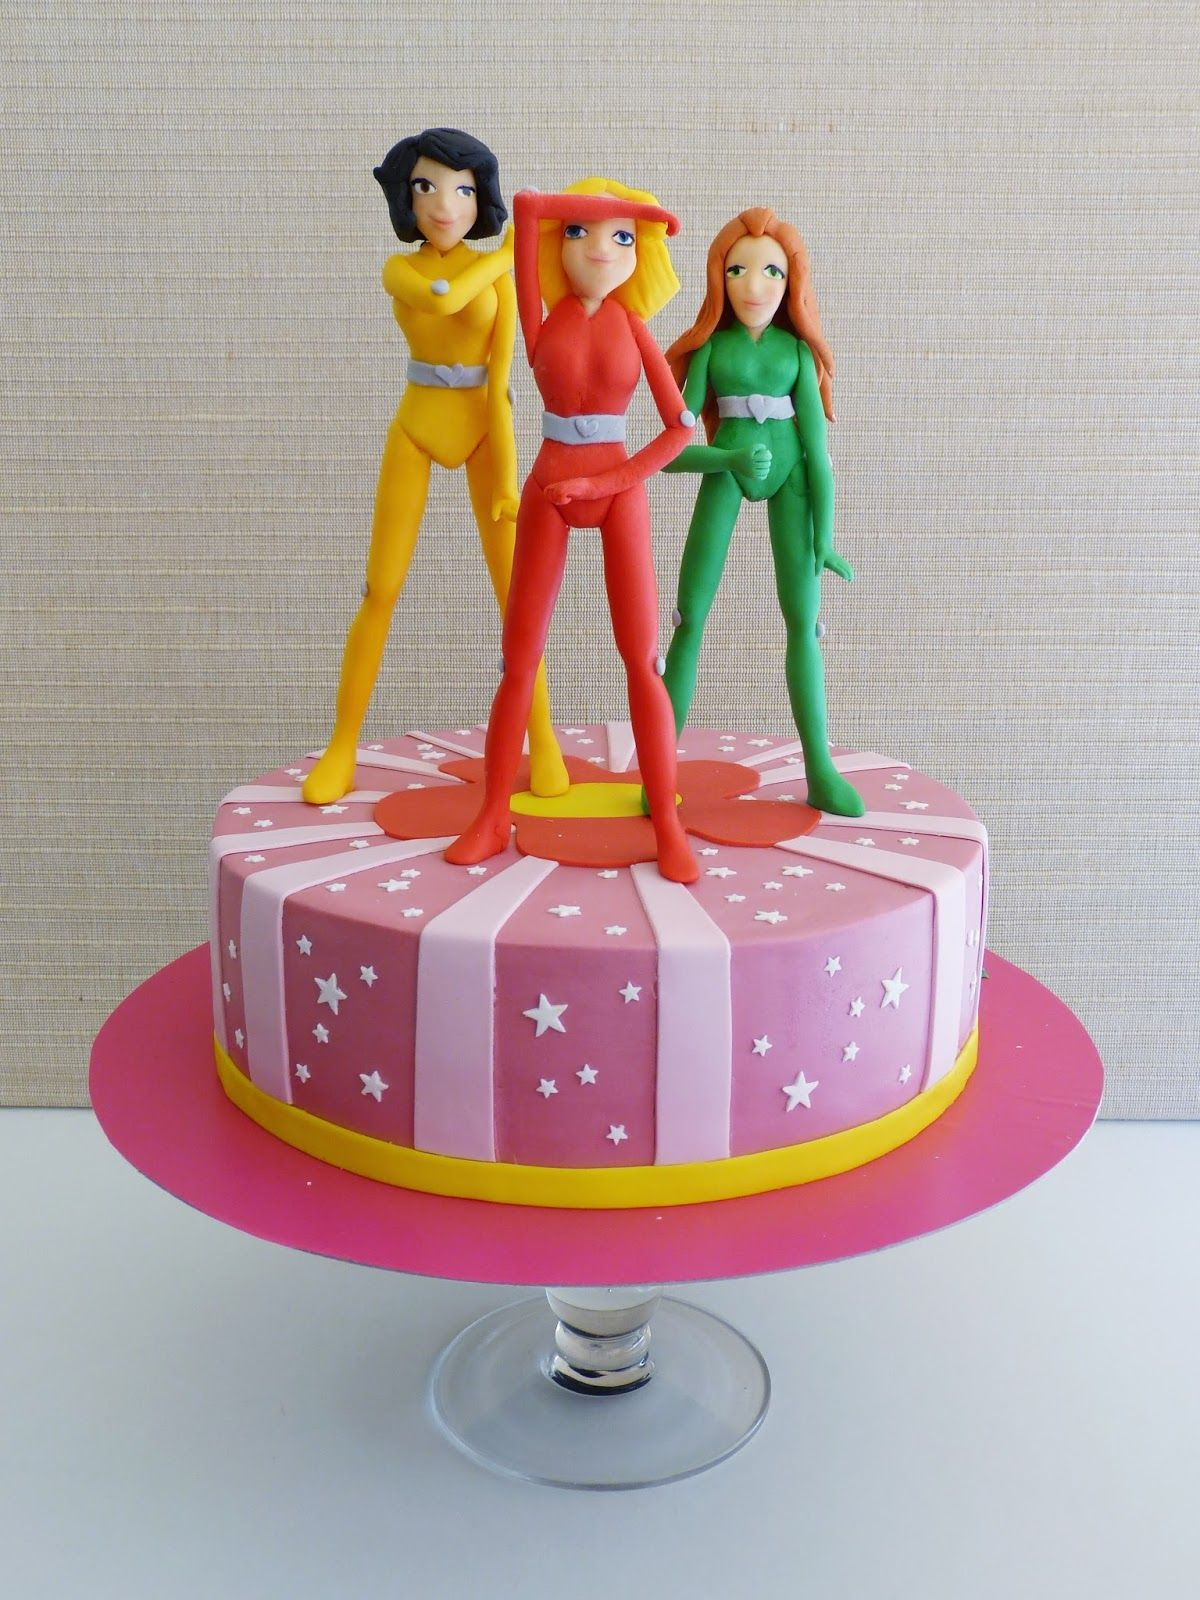 Totally spies by havesomesugar